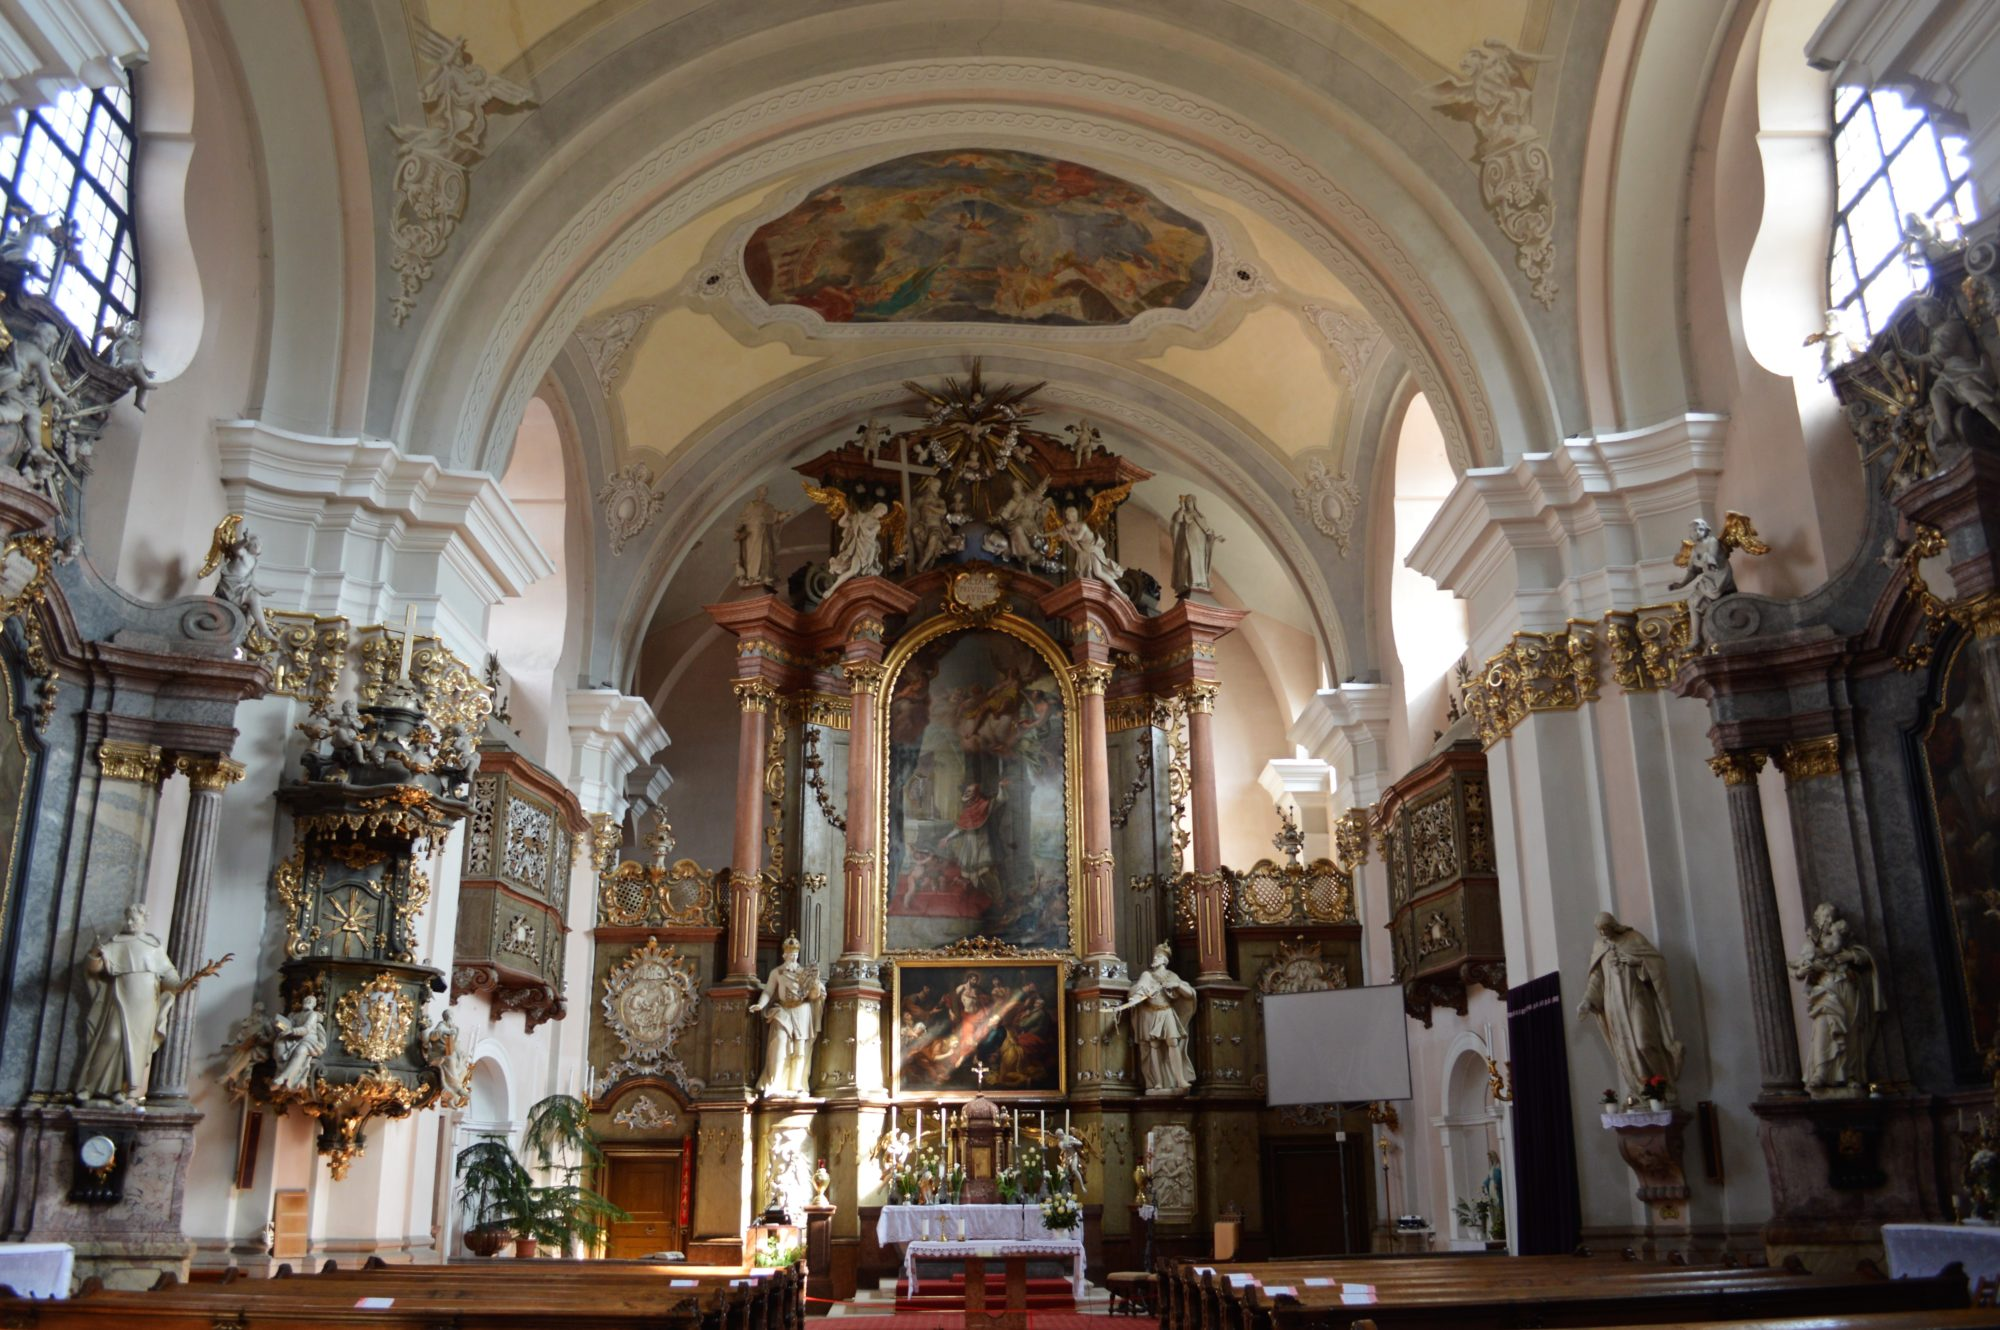 vac-white-church-inside